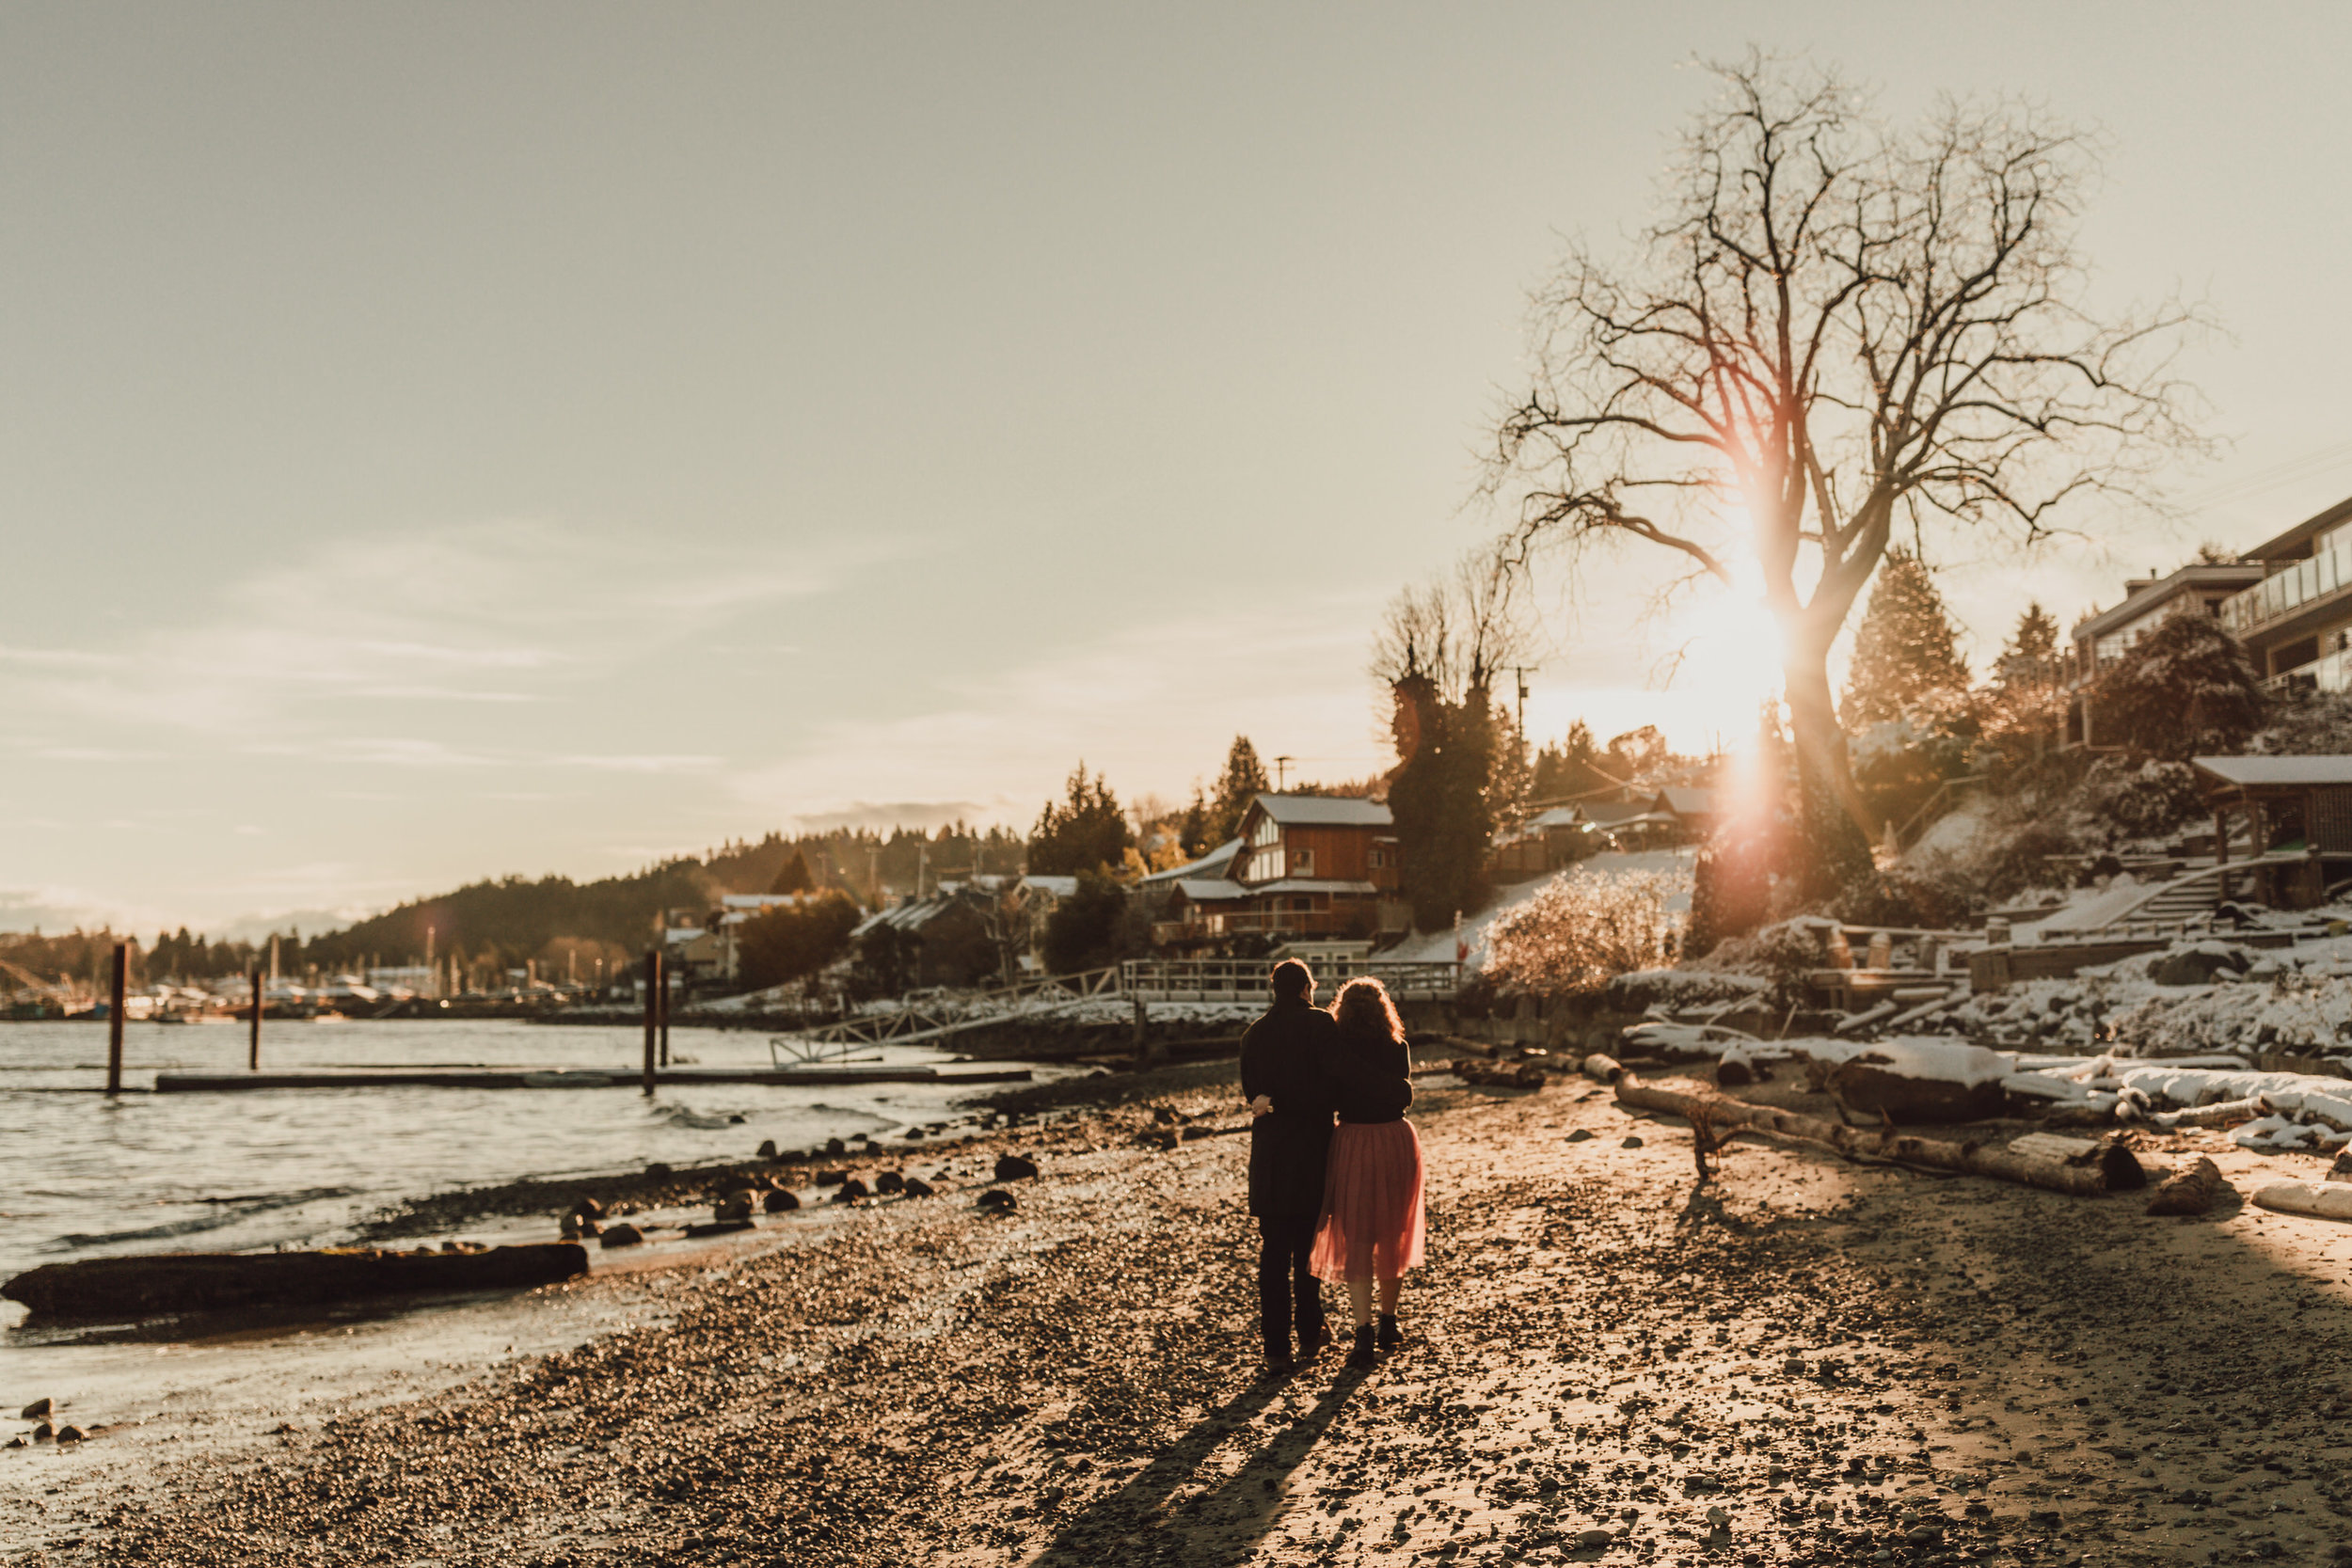 Snowy Engagement Photos - Gibsons Engagement Photos - Sunshine Coast Engagement Photos - Vancouver Wedding Photographer and Videographer - Jennifer Picard Photography082.JPG